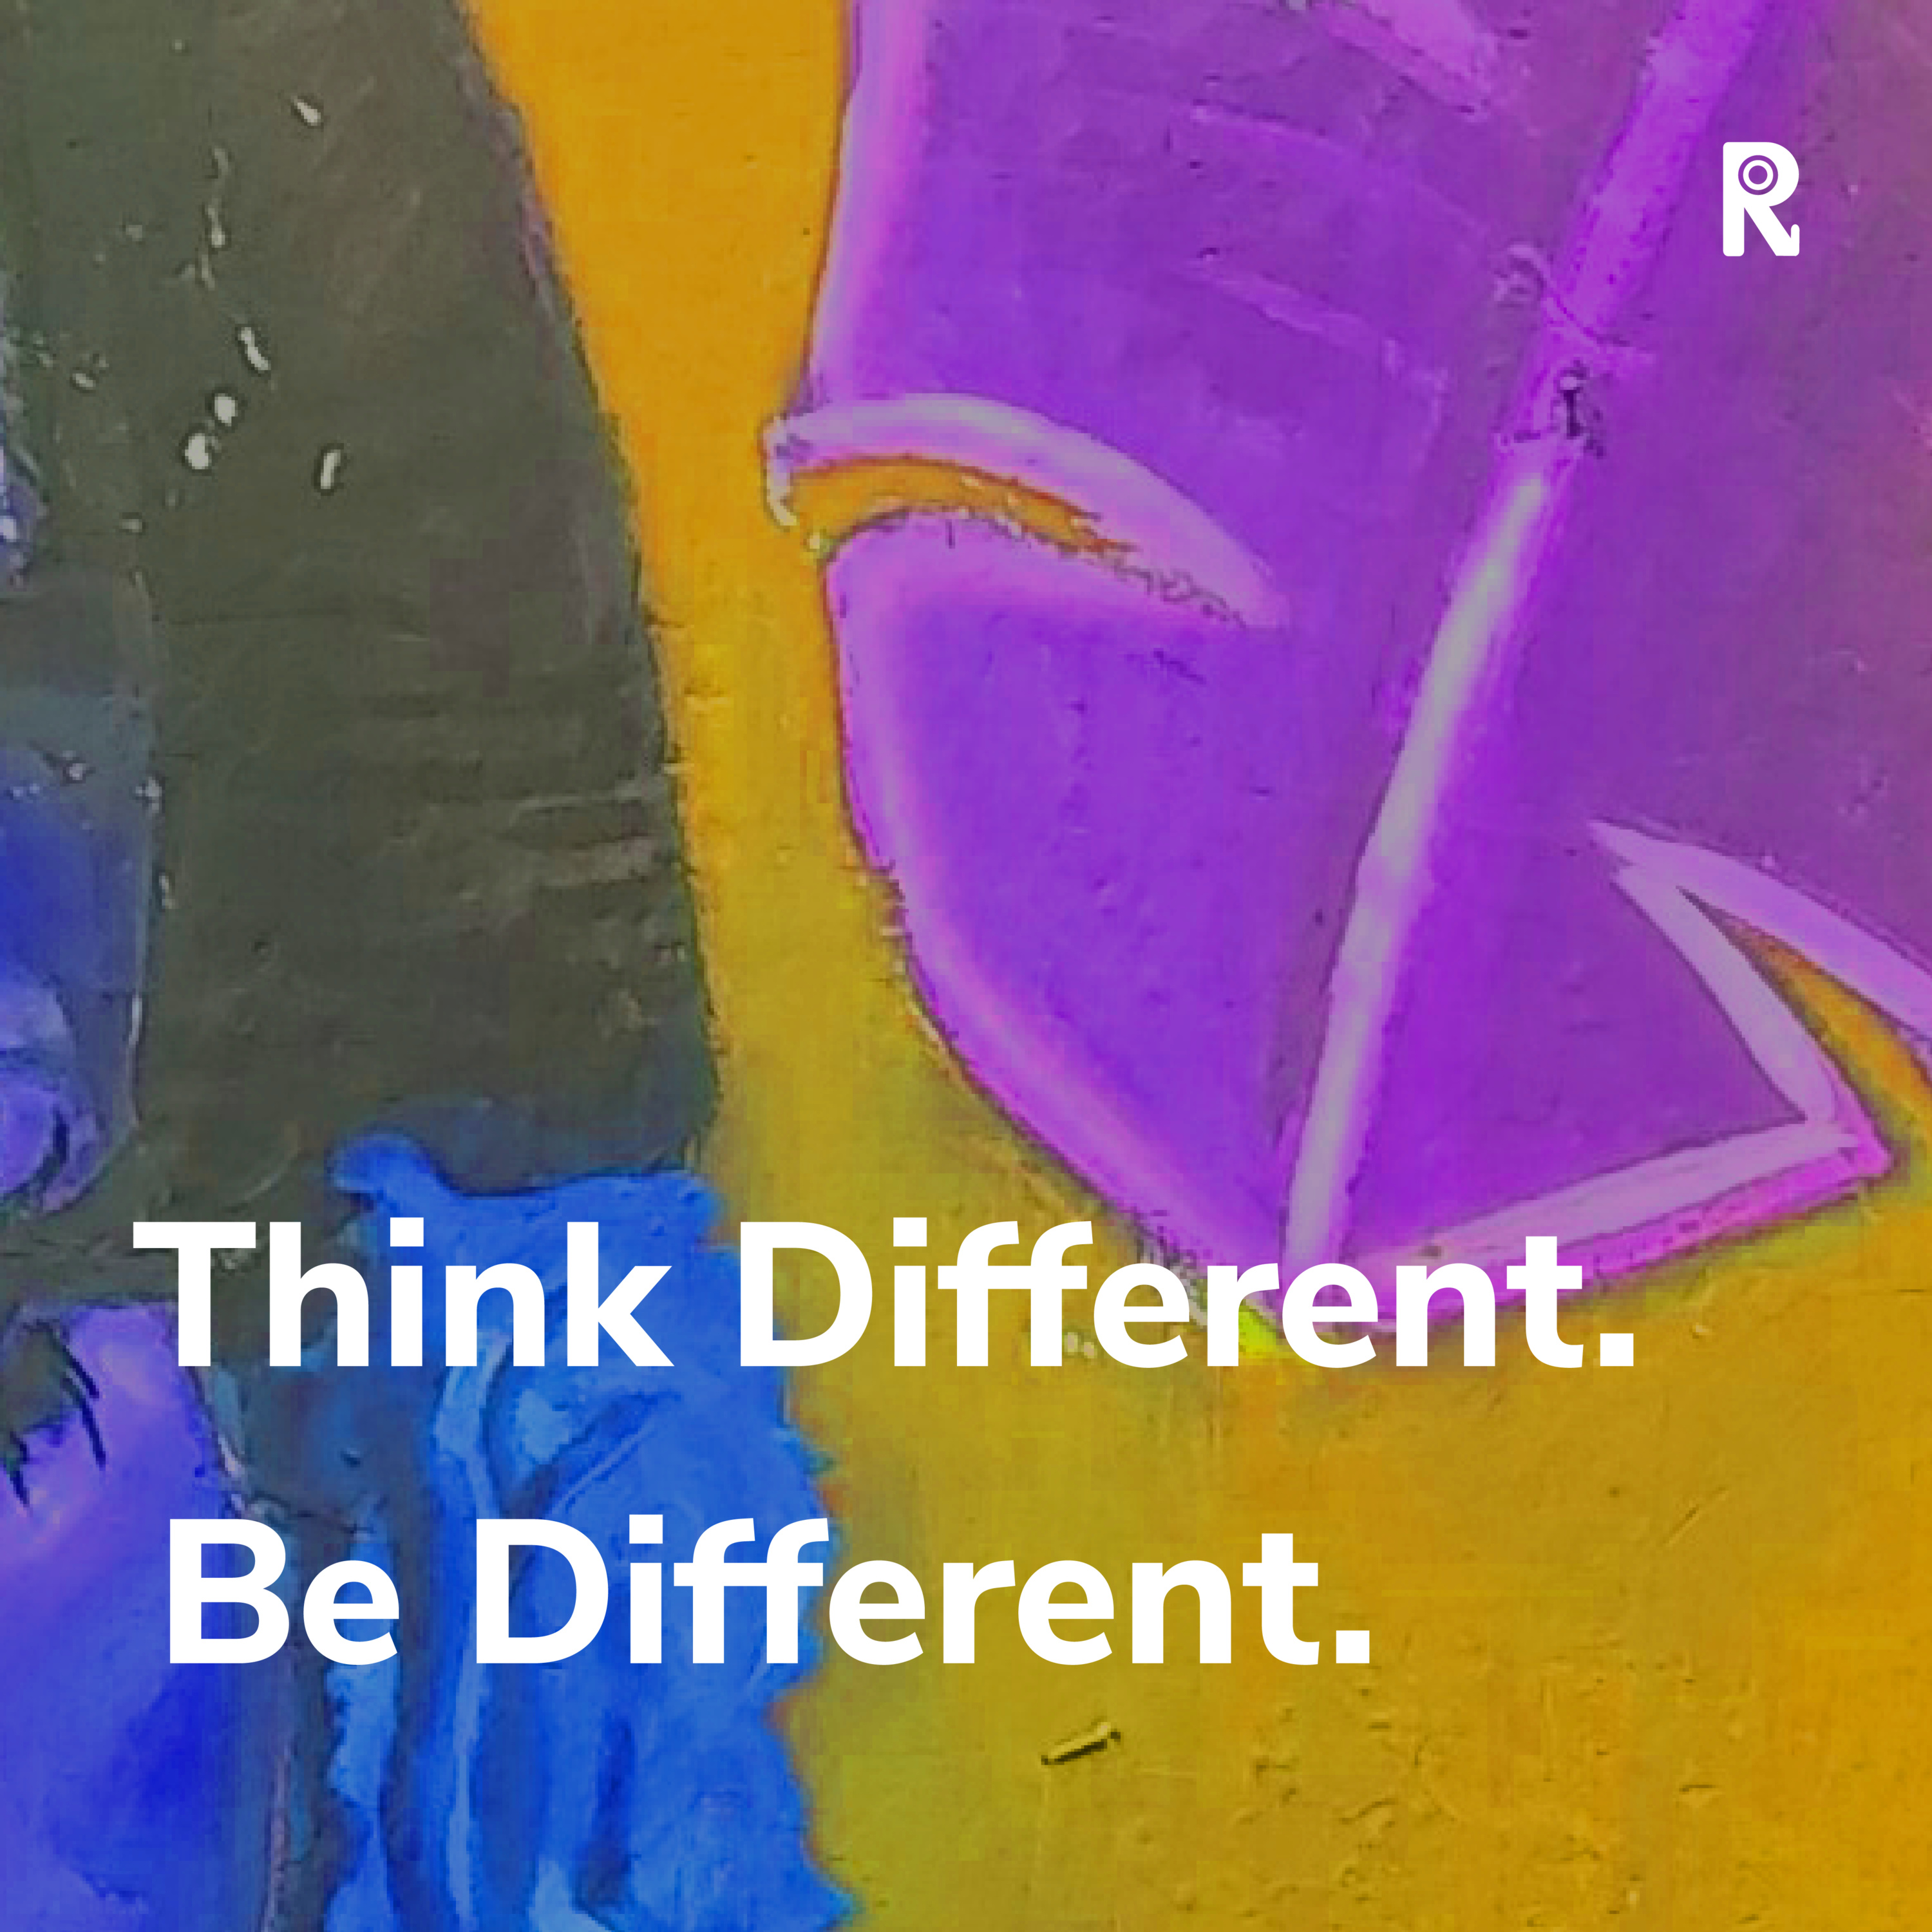 Think Different, Be Different (Introduce)